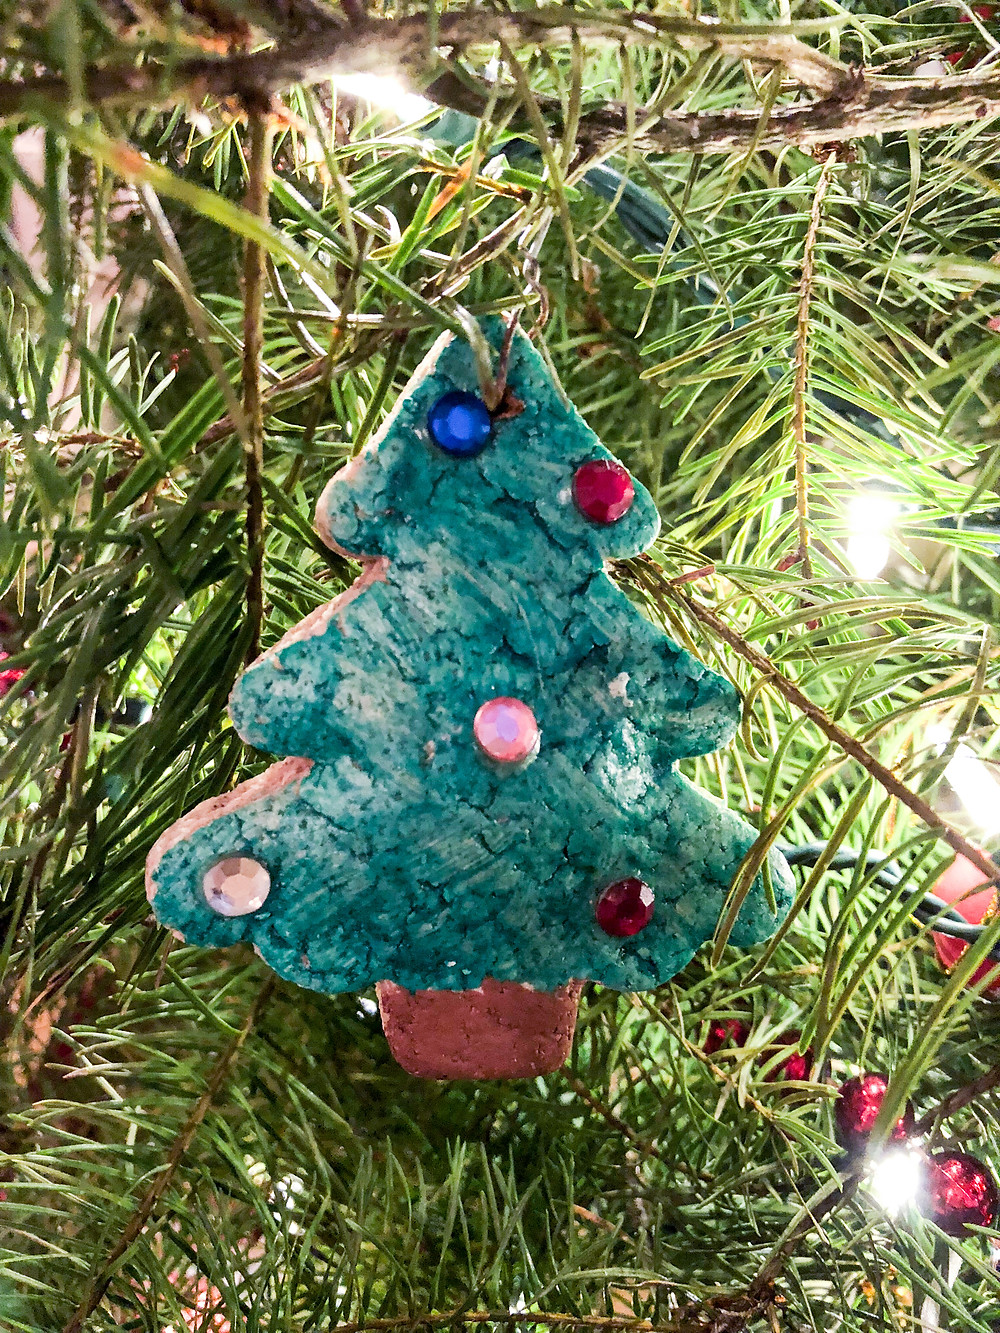 homemade salt dough ornament